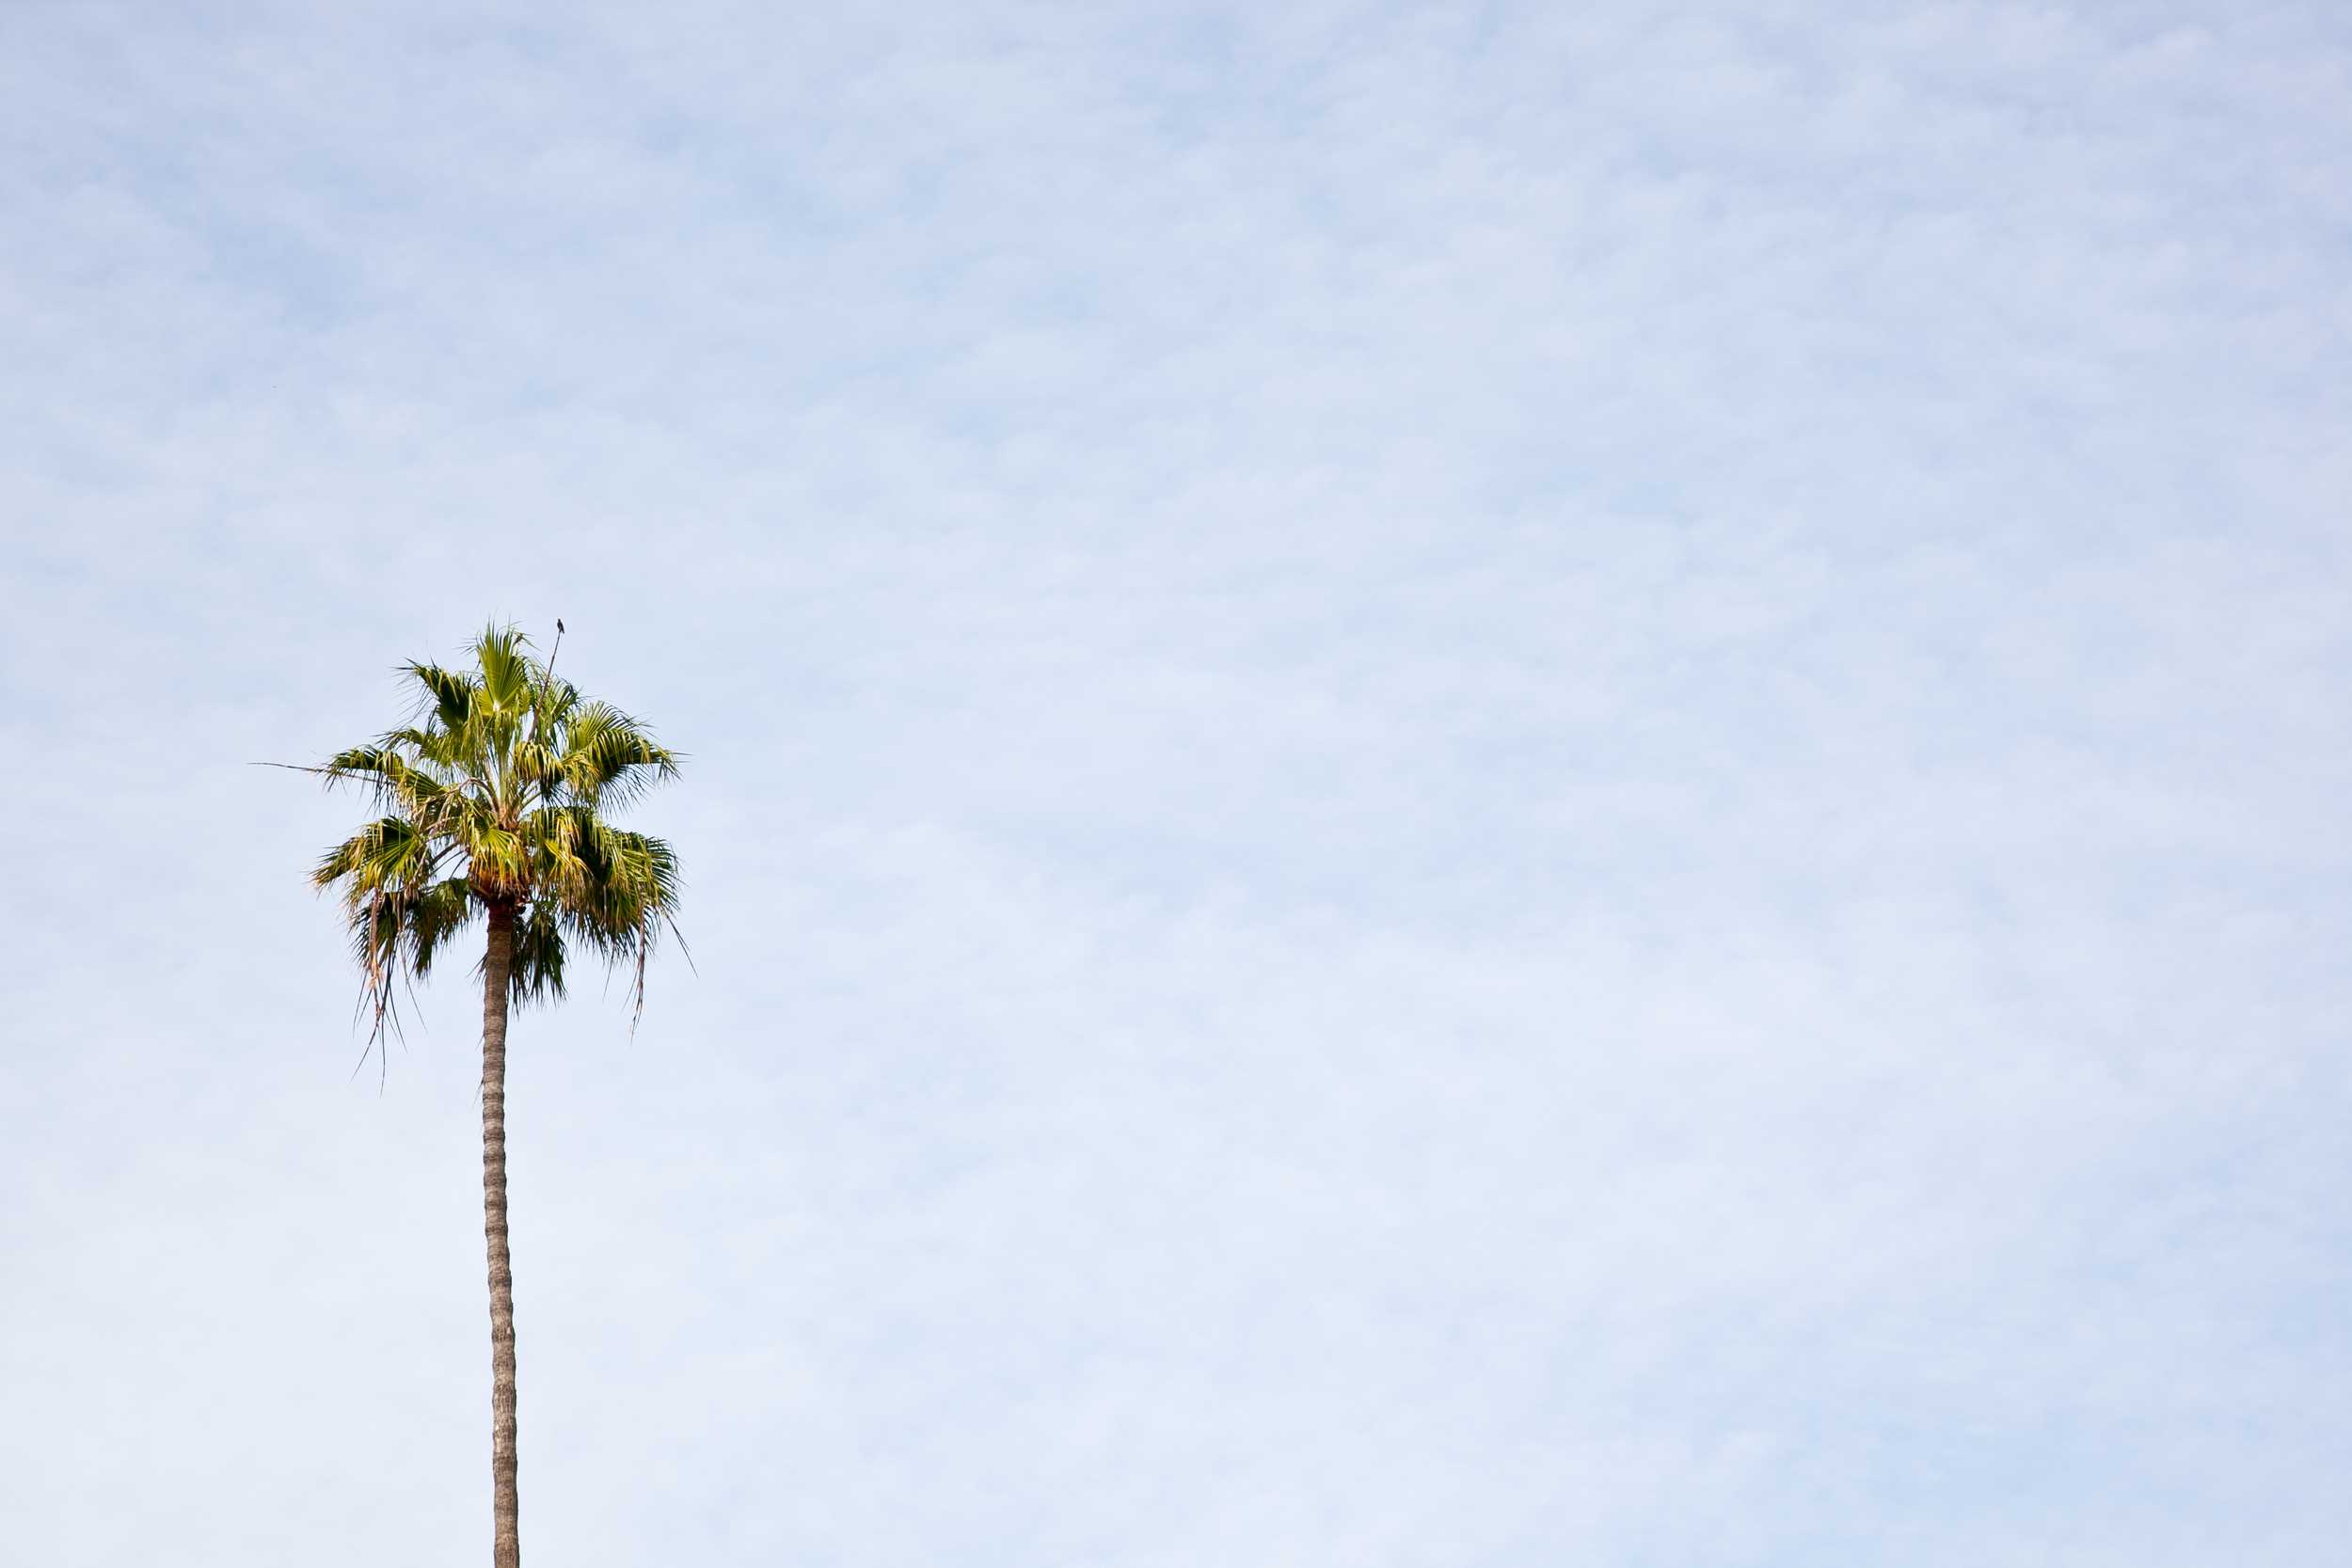 The quintessential Los Angeles palm tree